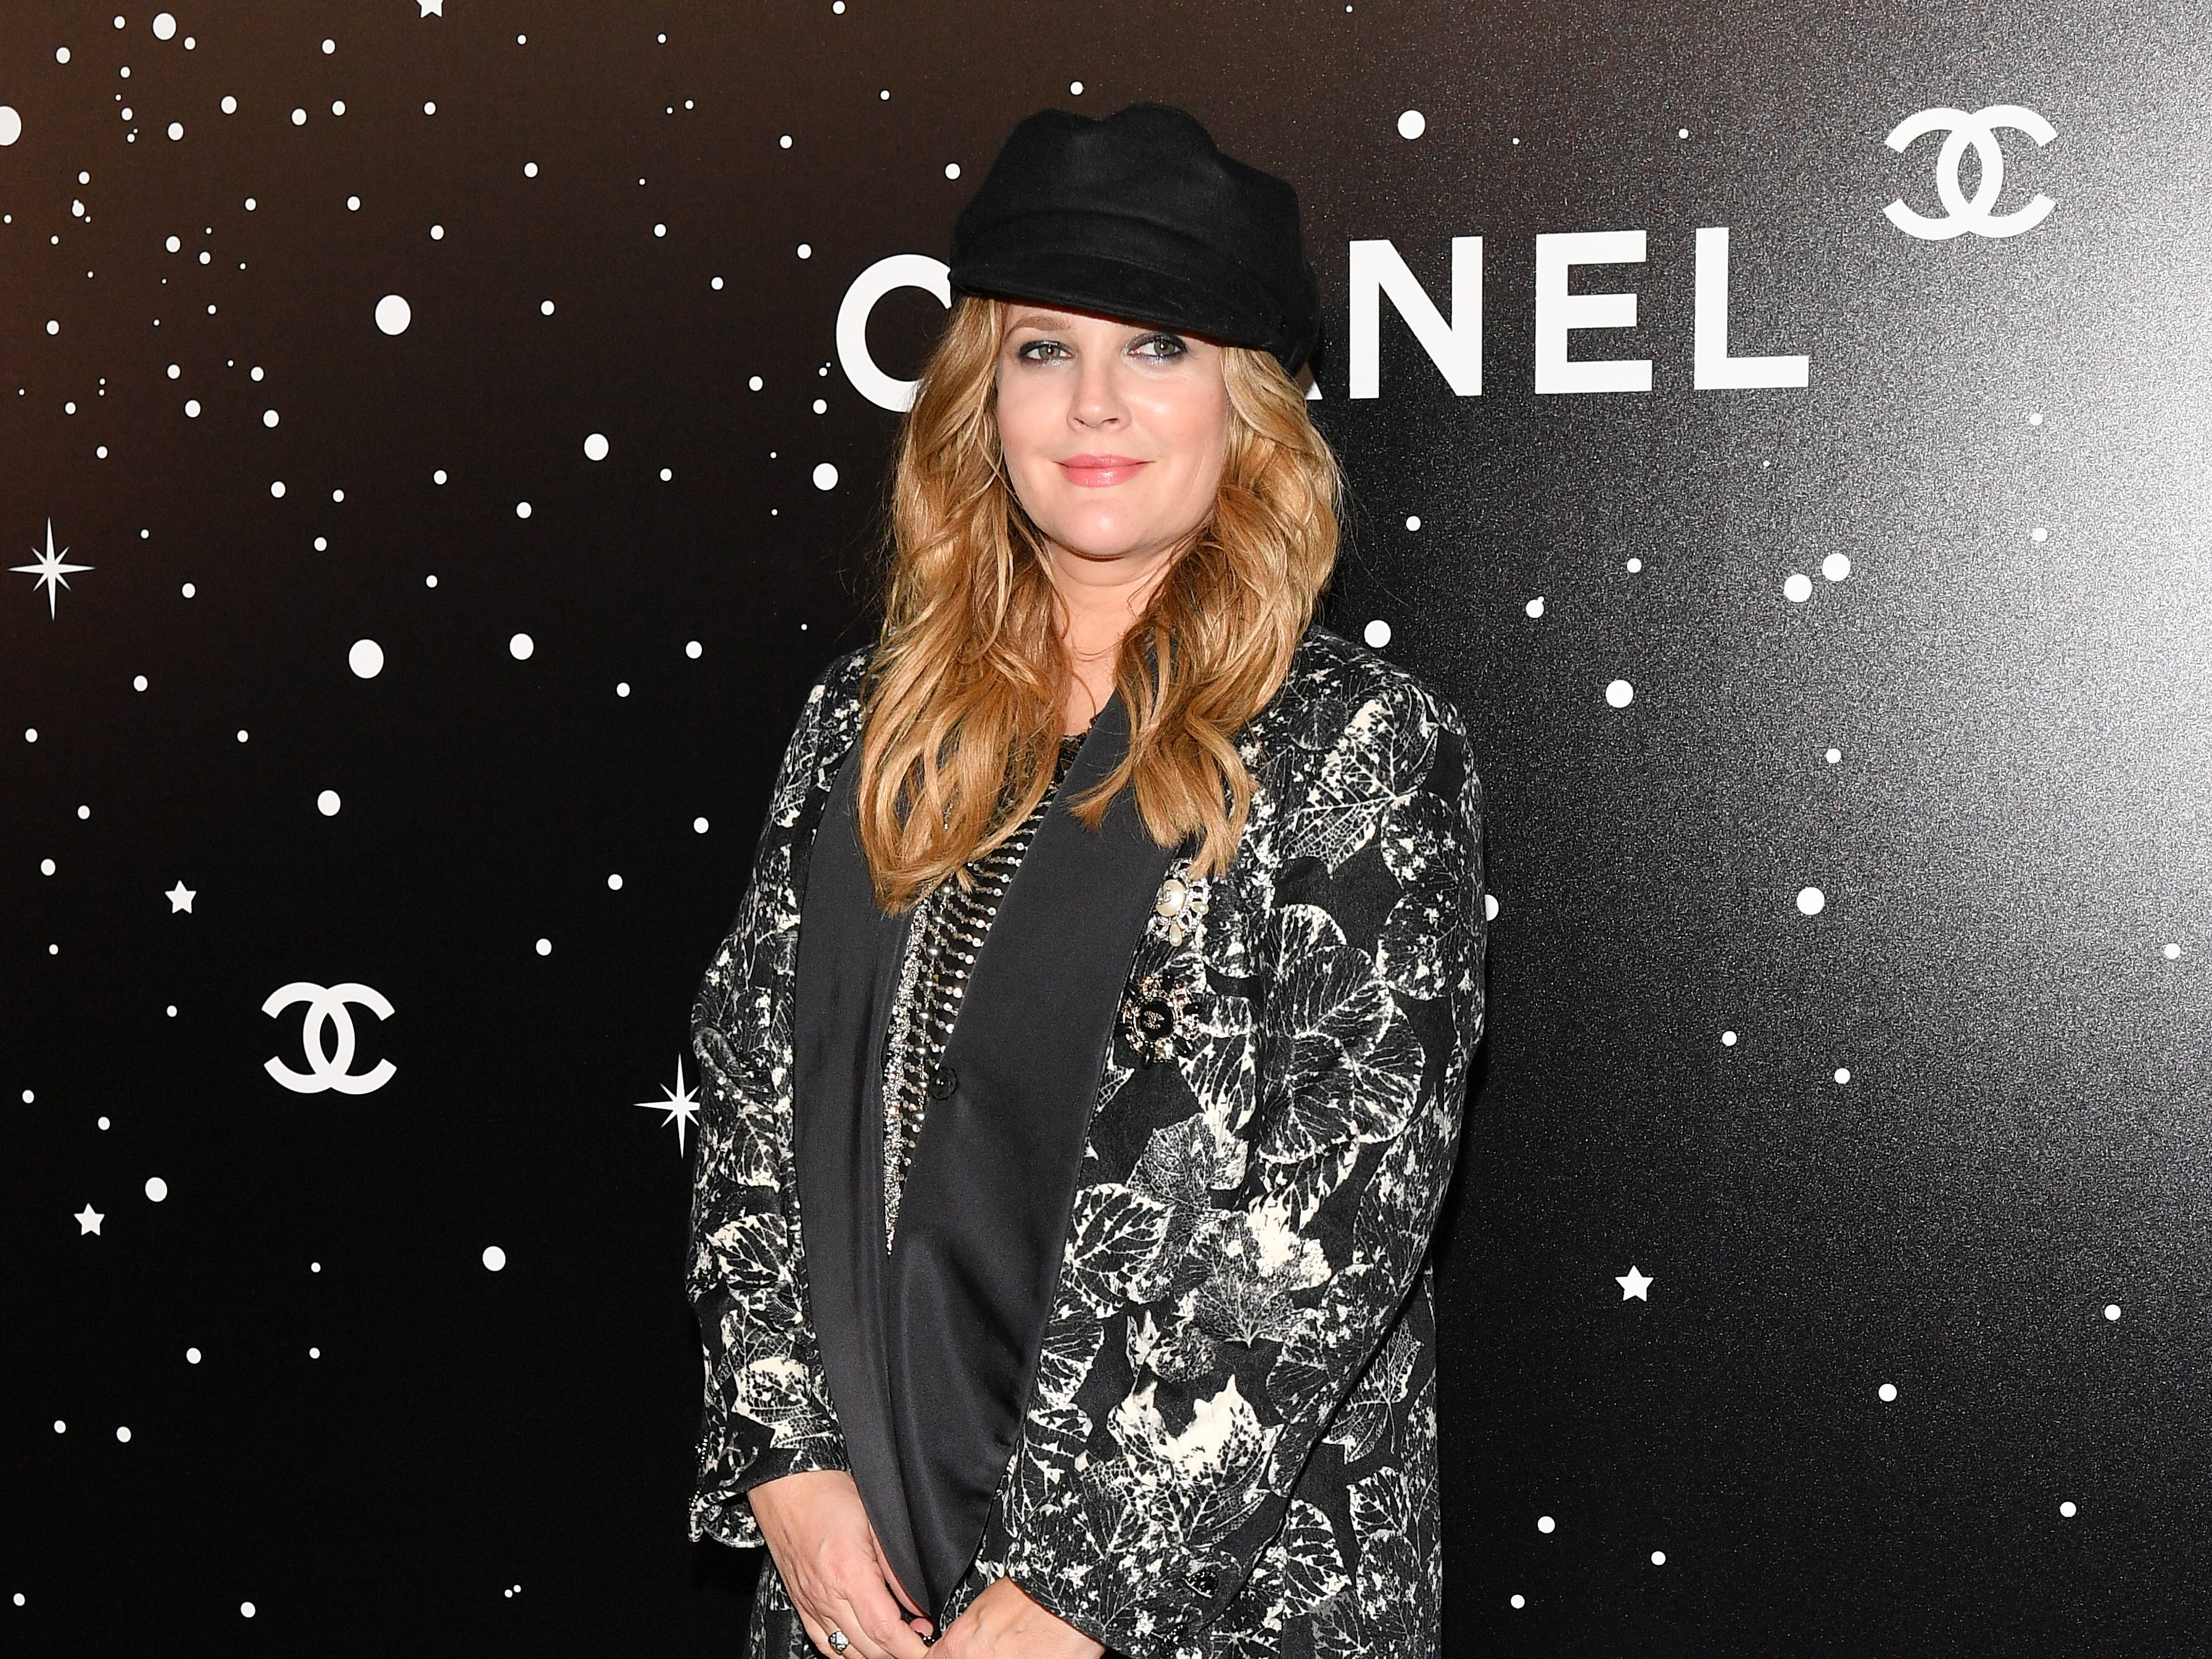 NEW YORK, NEW YORK - NOVEMBER 19:  Drew Barrymore attends the 2018 Museum of Modern Art Film Benefit: A Tribute To Martin Scorsese at Museum of Modern Art on November 19, 2018 in New York City. (Photo by Dia Dipasupil/WireImage) ORG XMIT: 775259312 ORIG FILE ID: 1069869964